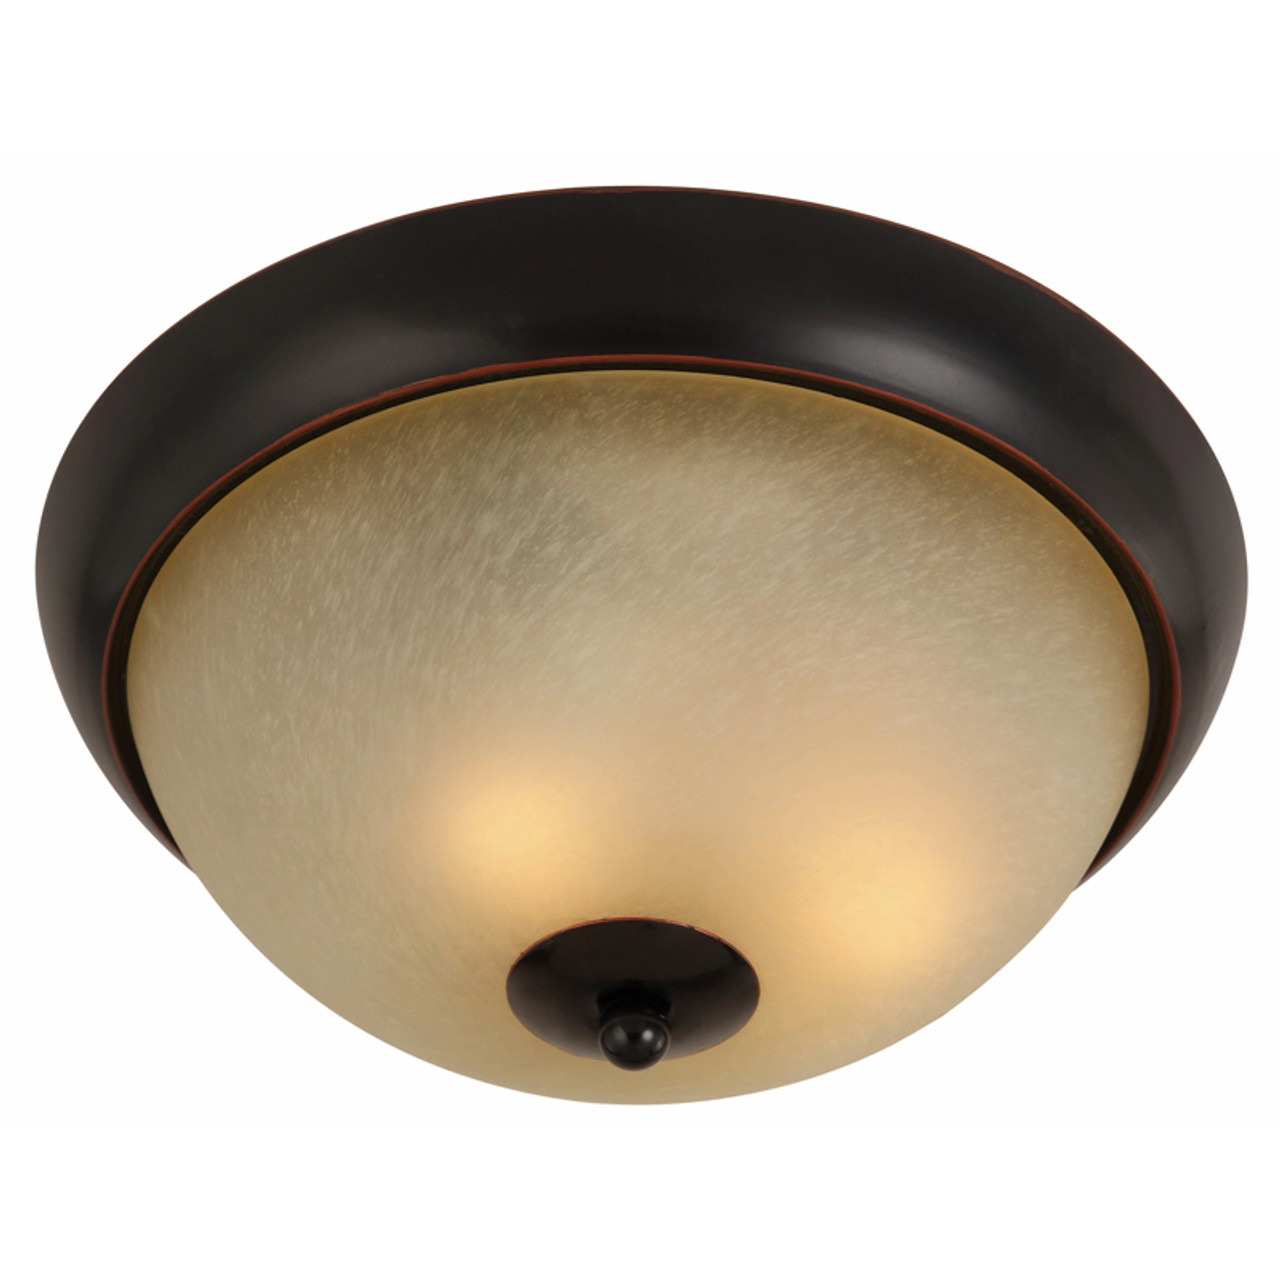 Oil Rubbed Bronze Flush Mount Ceiling Light Fixture 16 7970 Discount Home Furnishings Inc